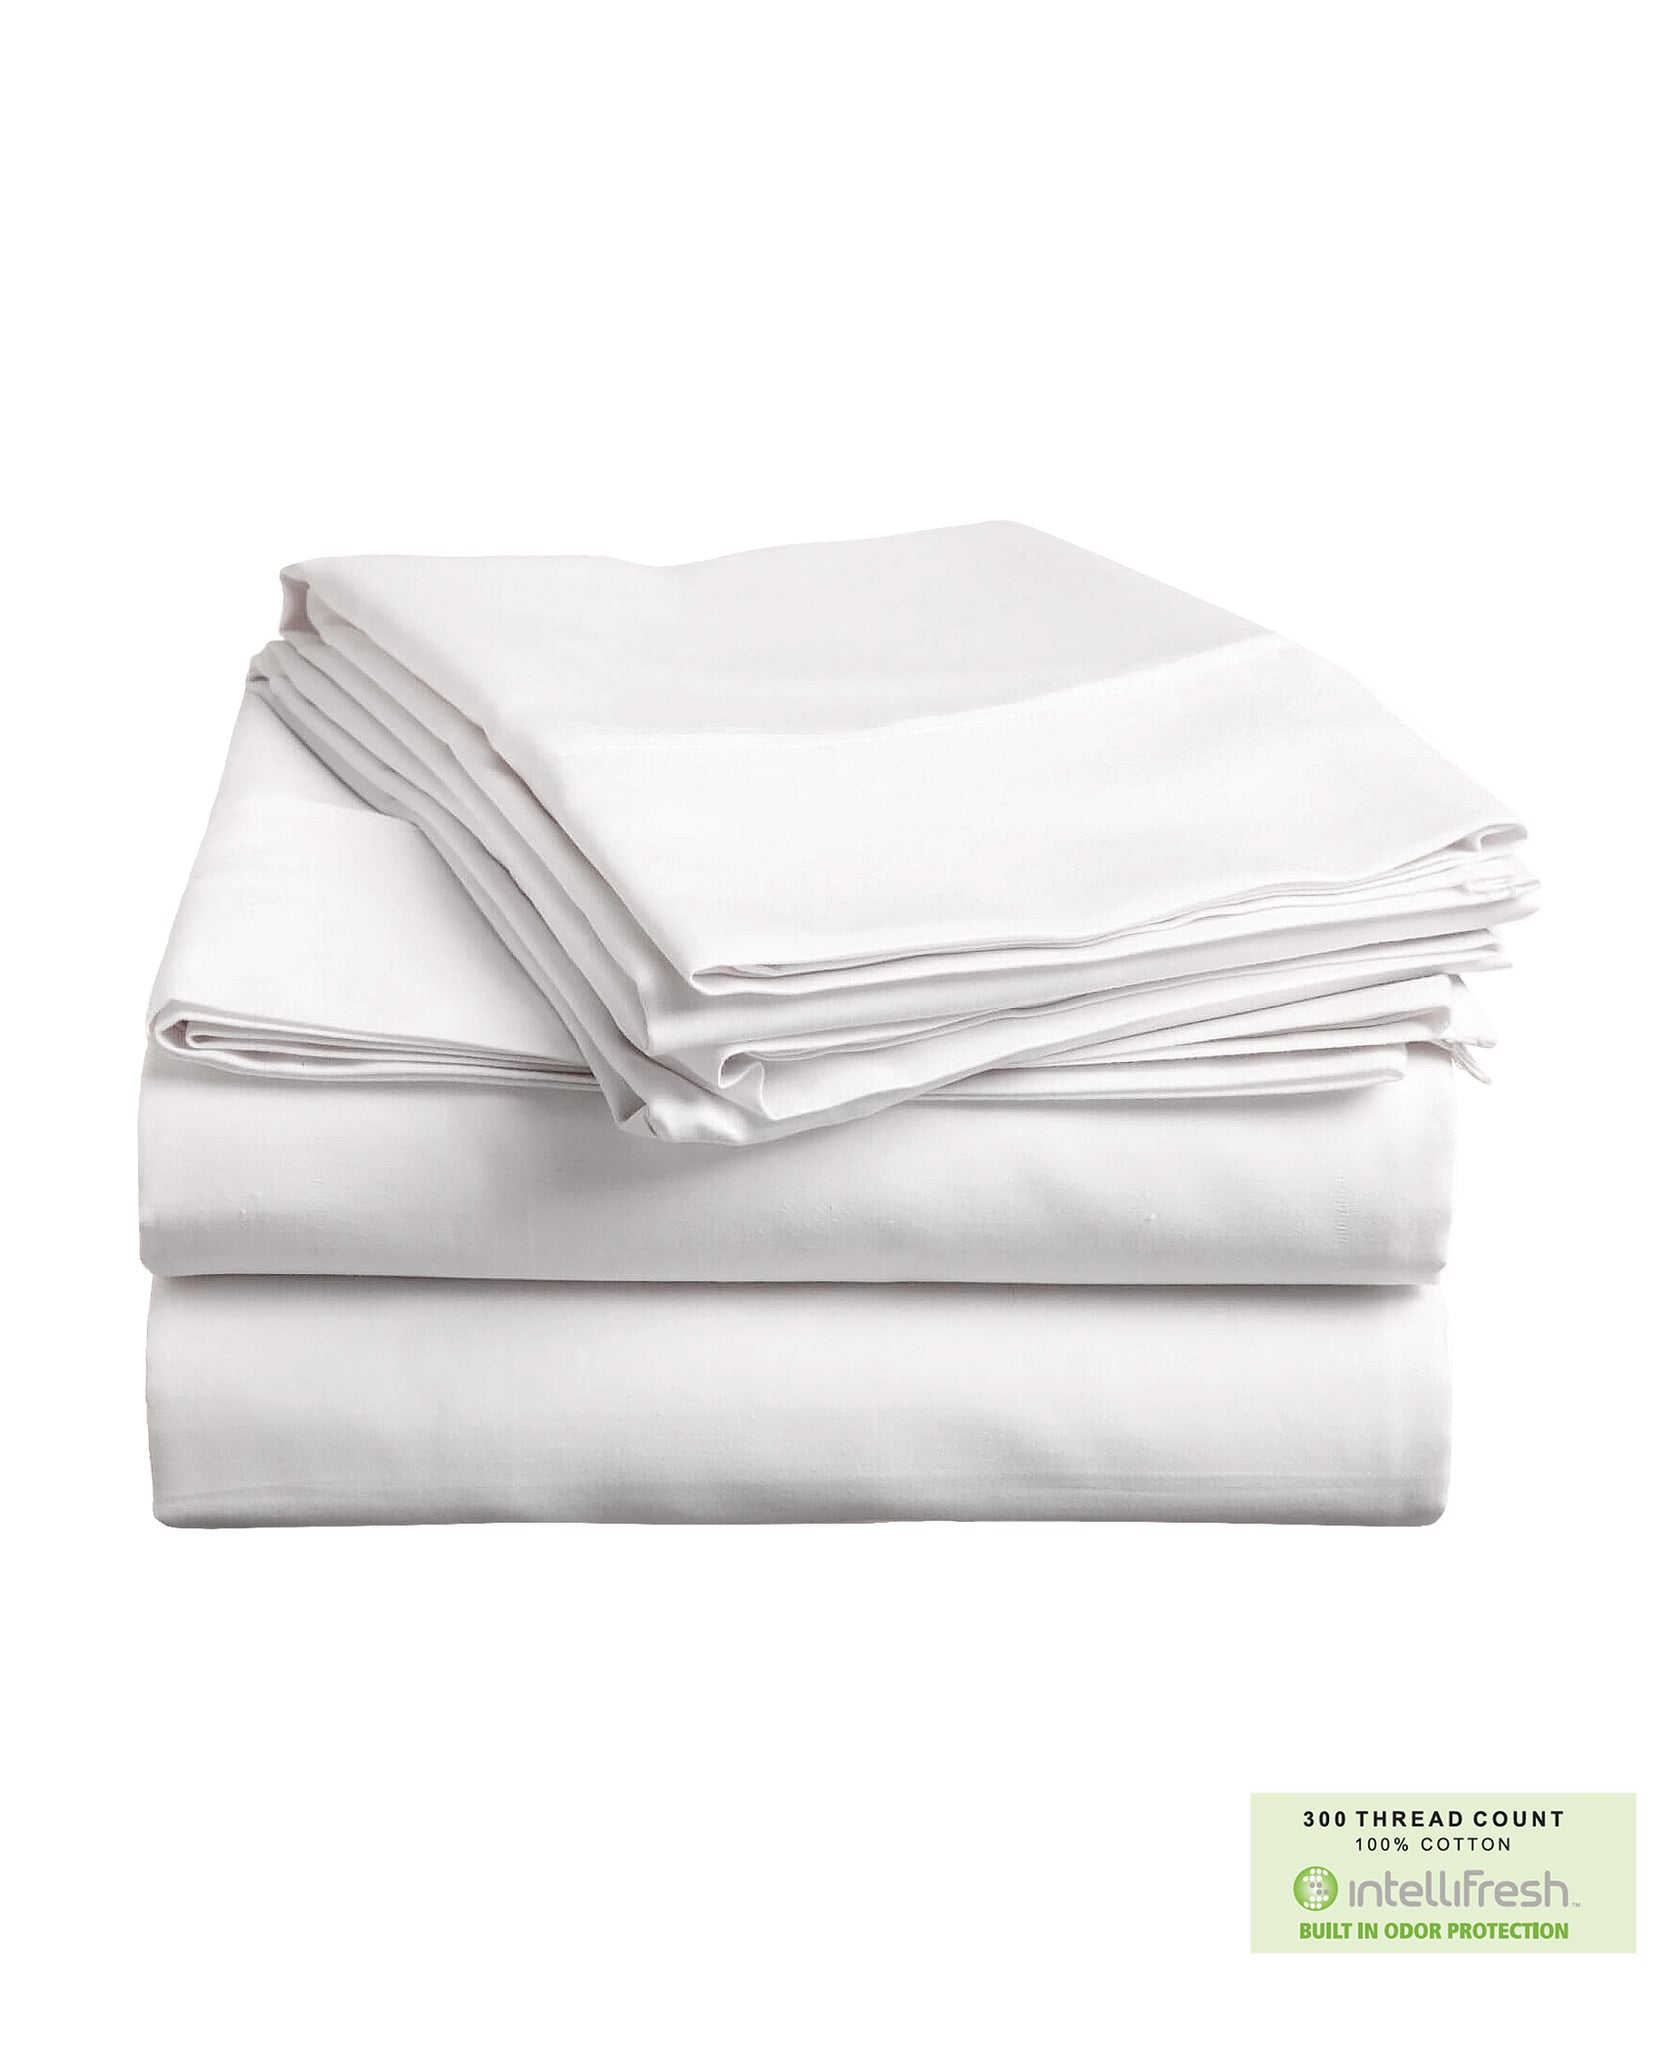 300 Threadcount Cotton Bedsheet Set with Intellifresh Odor-control Finish, King Size